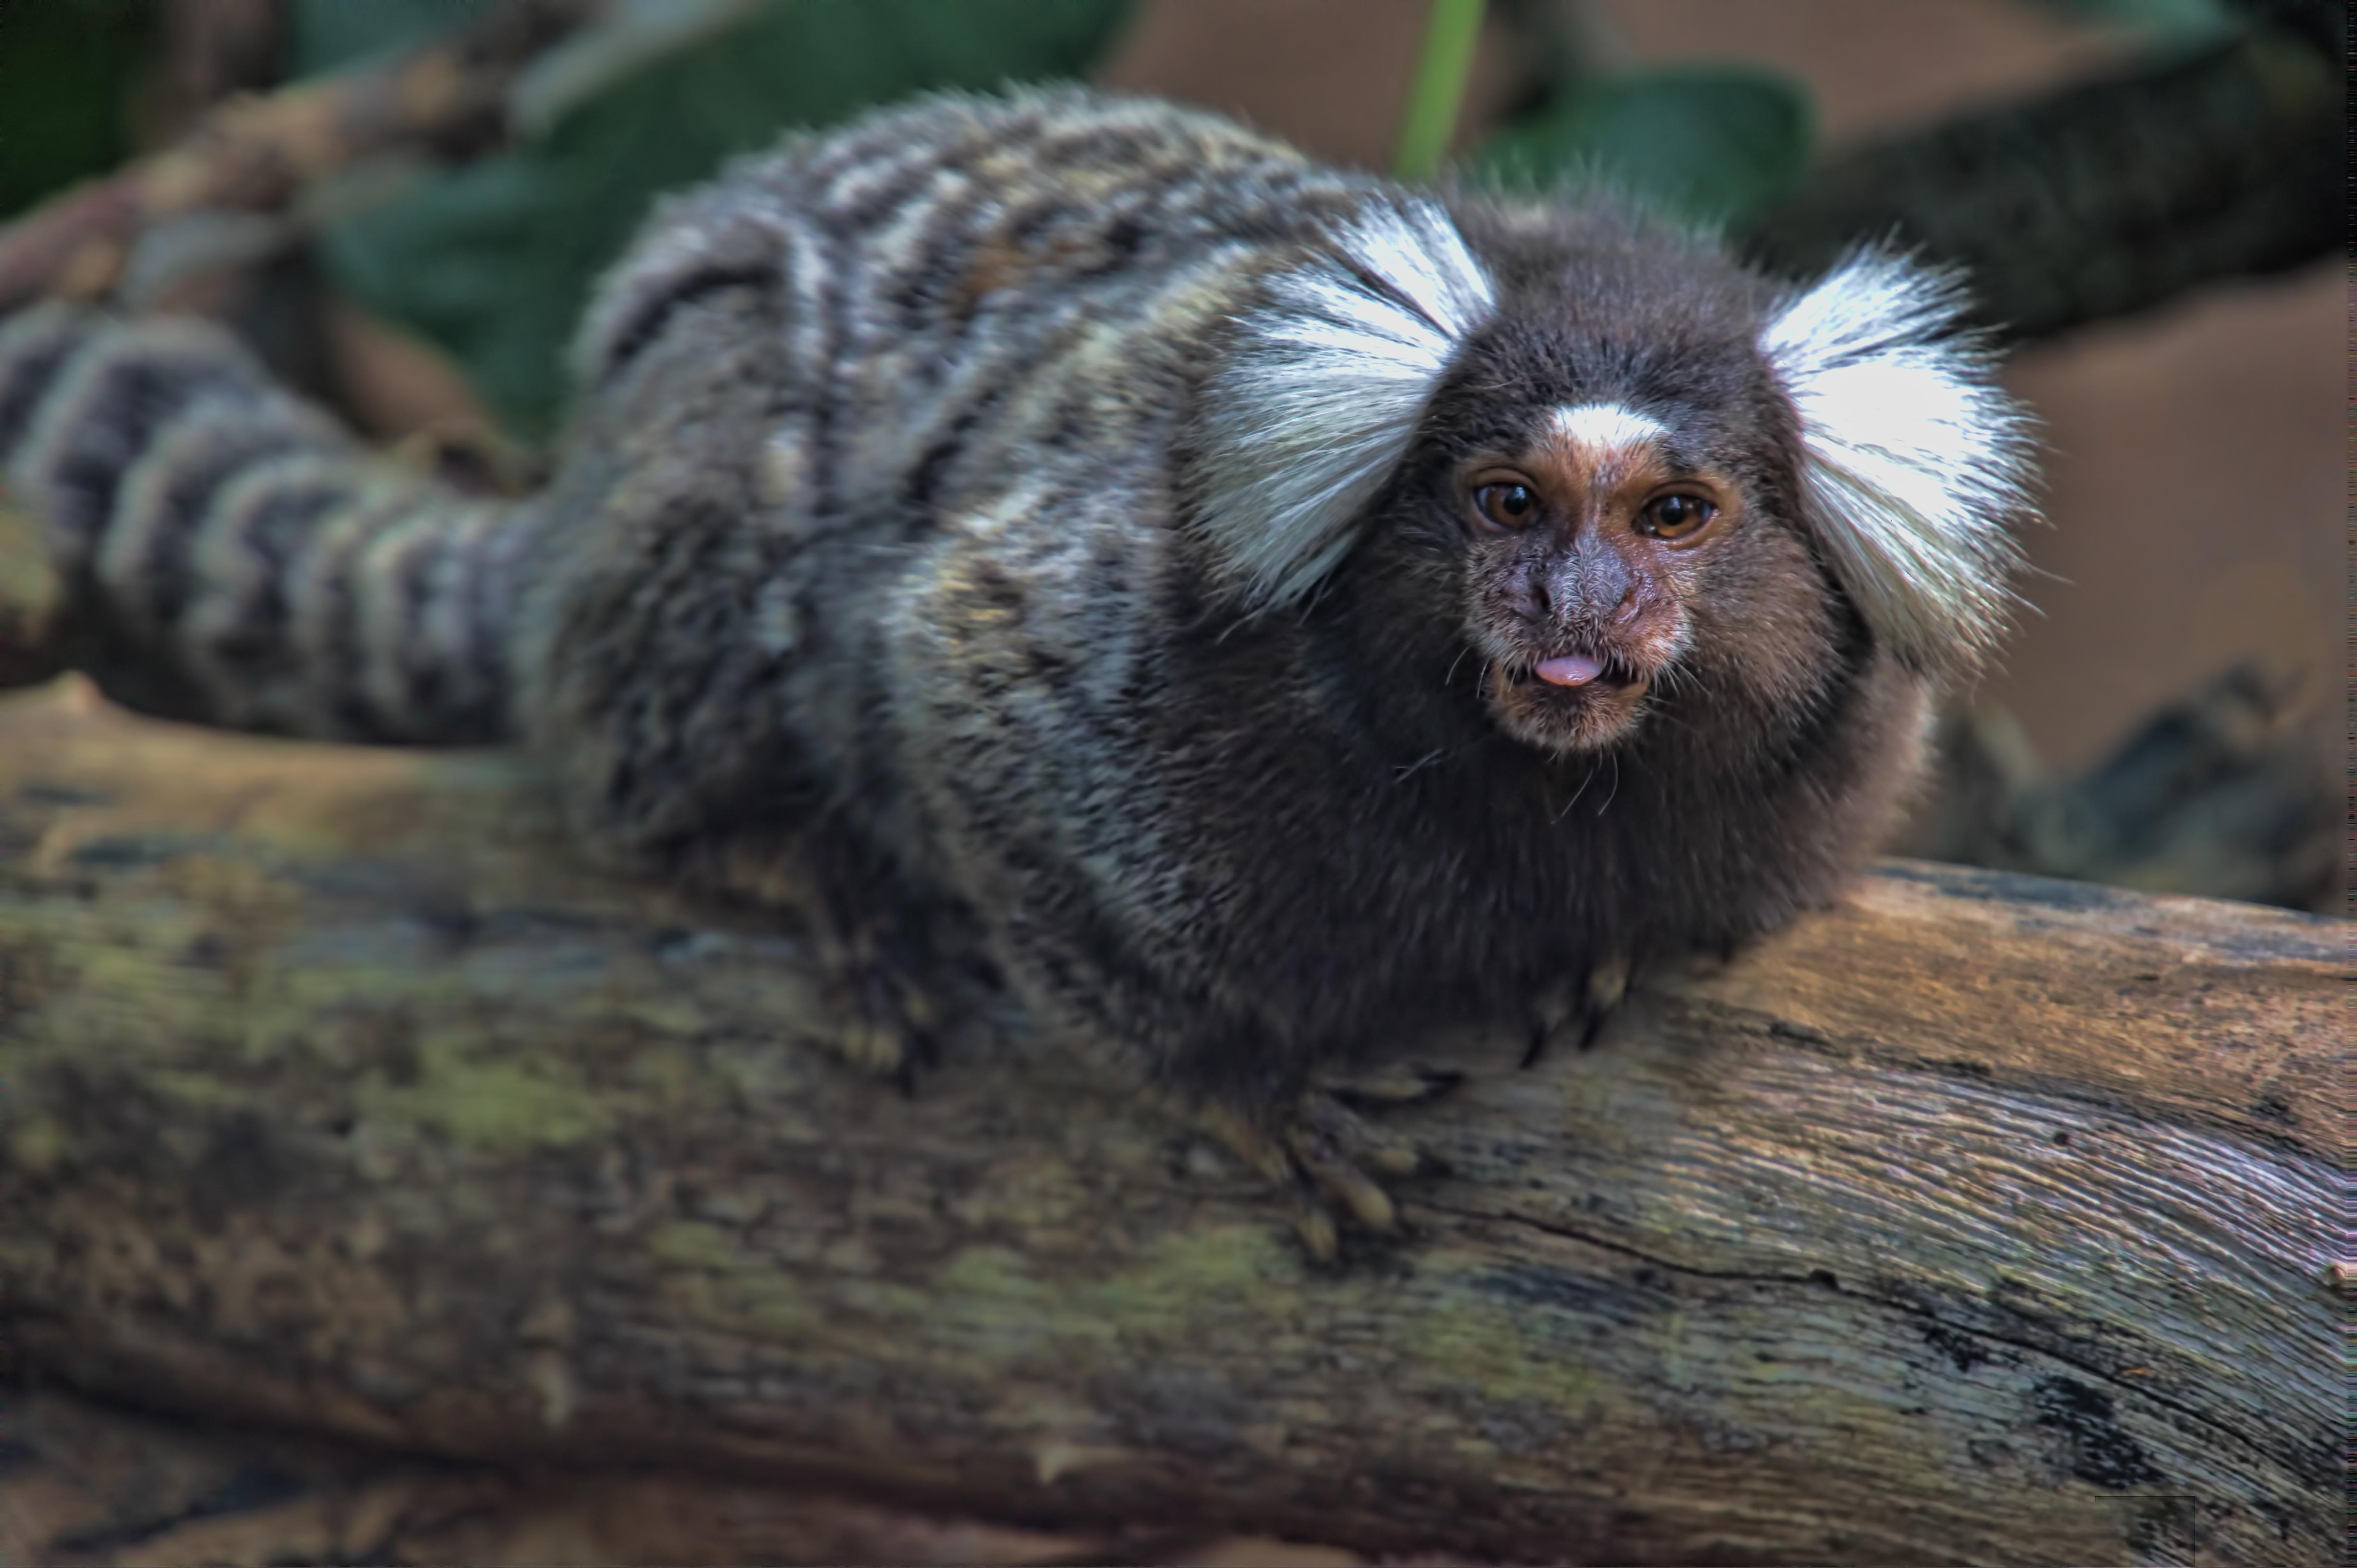 White-eared_marmoset